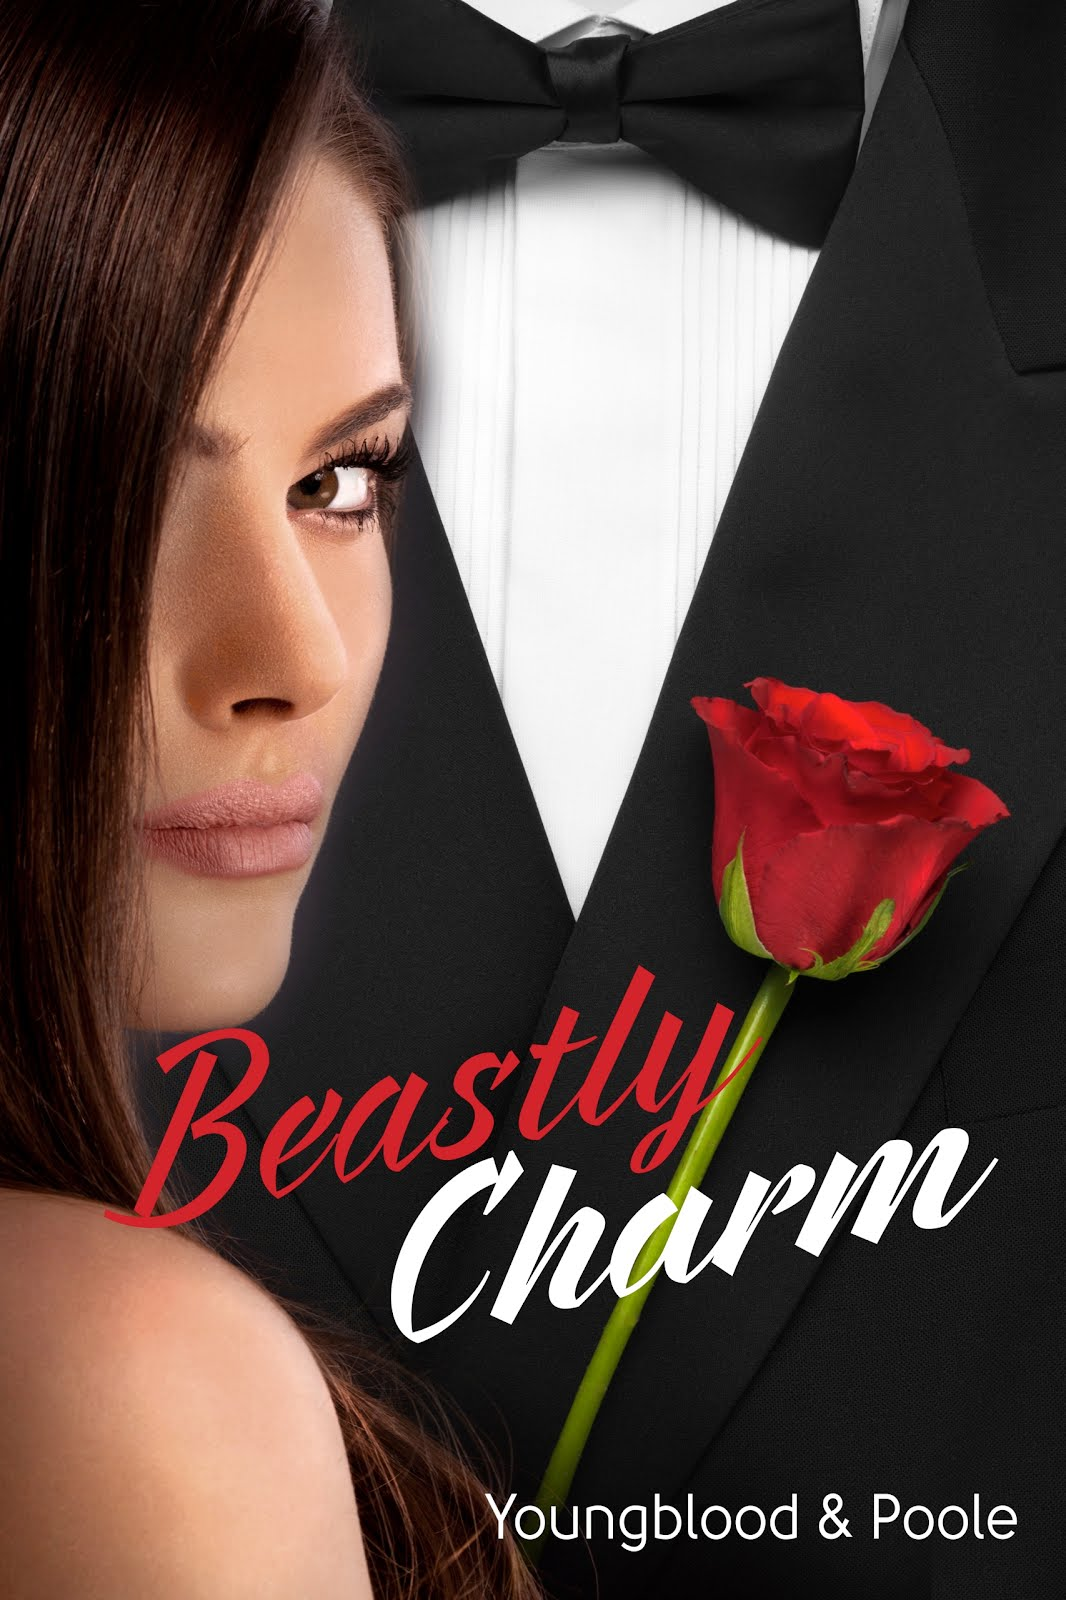 Join my Newsletter for a FREE copy of BEASTLY CHARM.